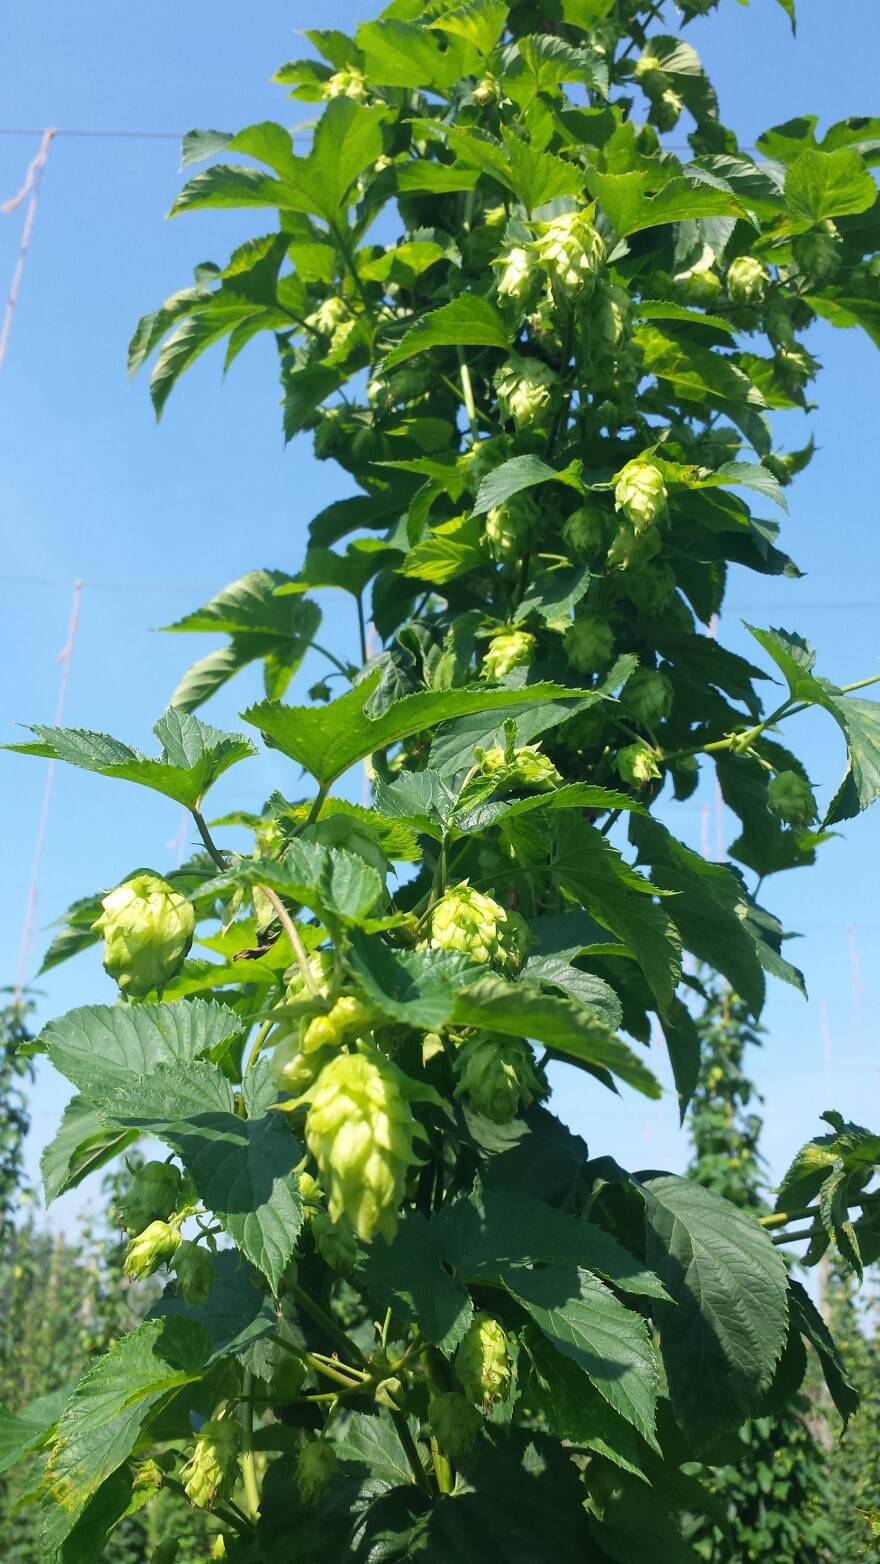 The climbing hops plant is known as a bine, not a vine.